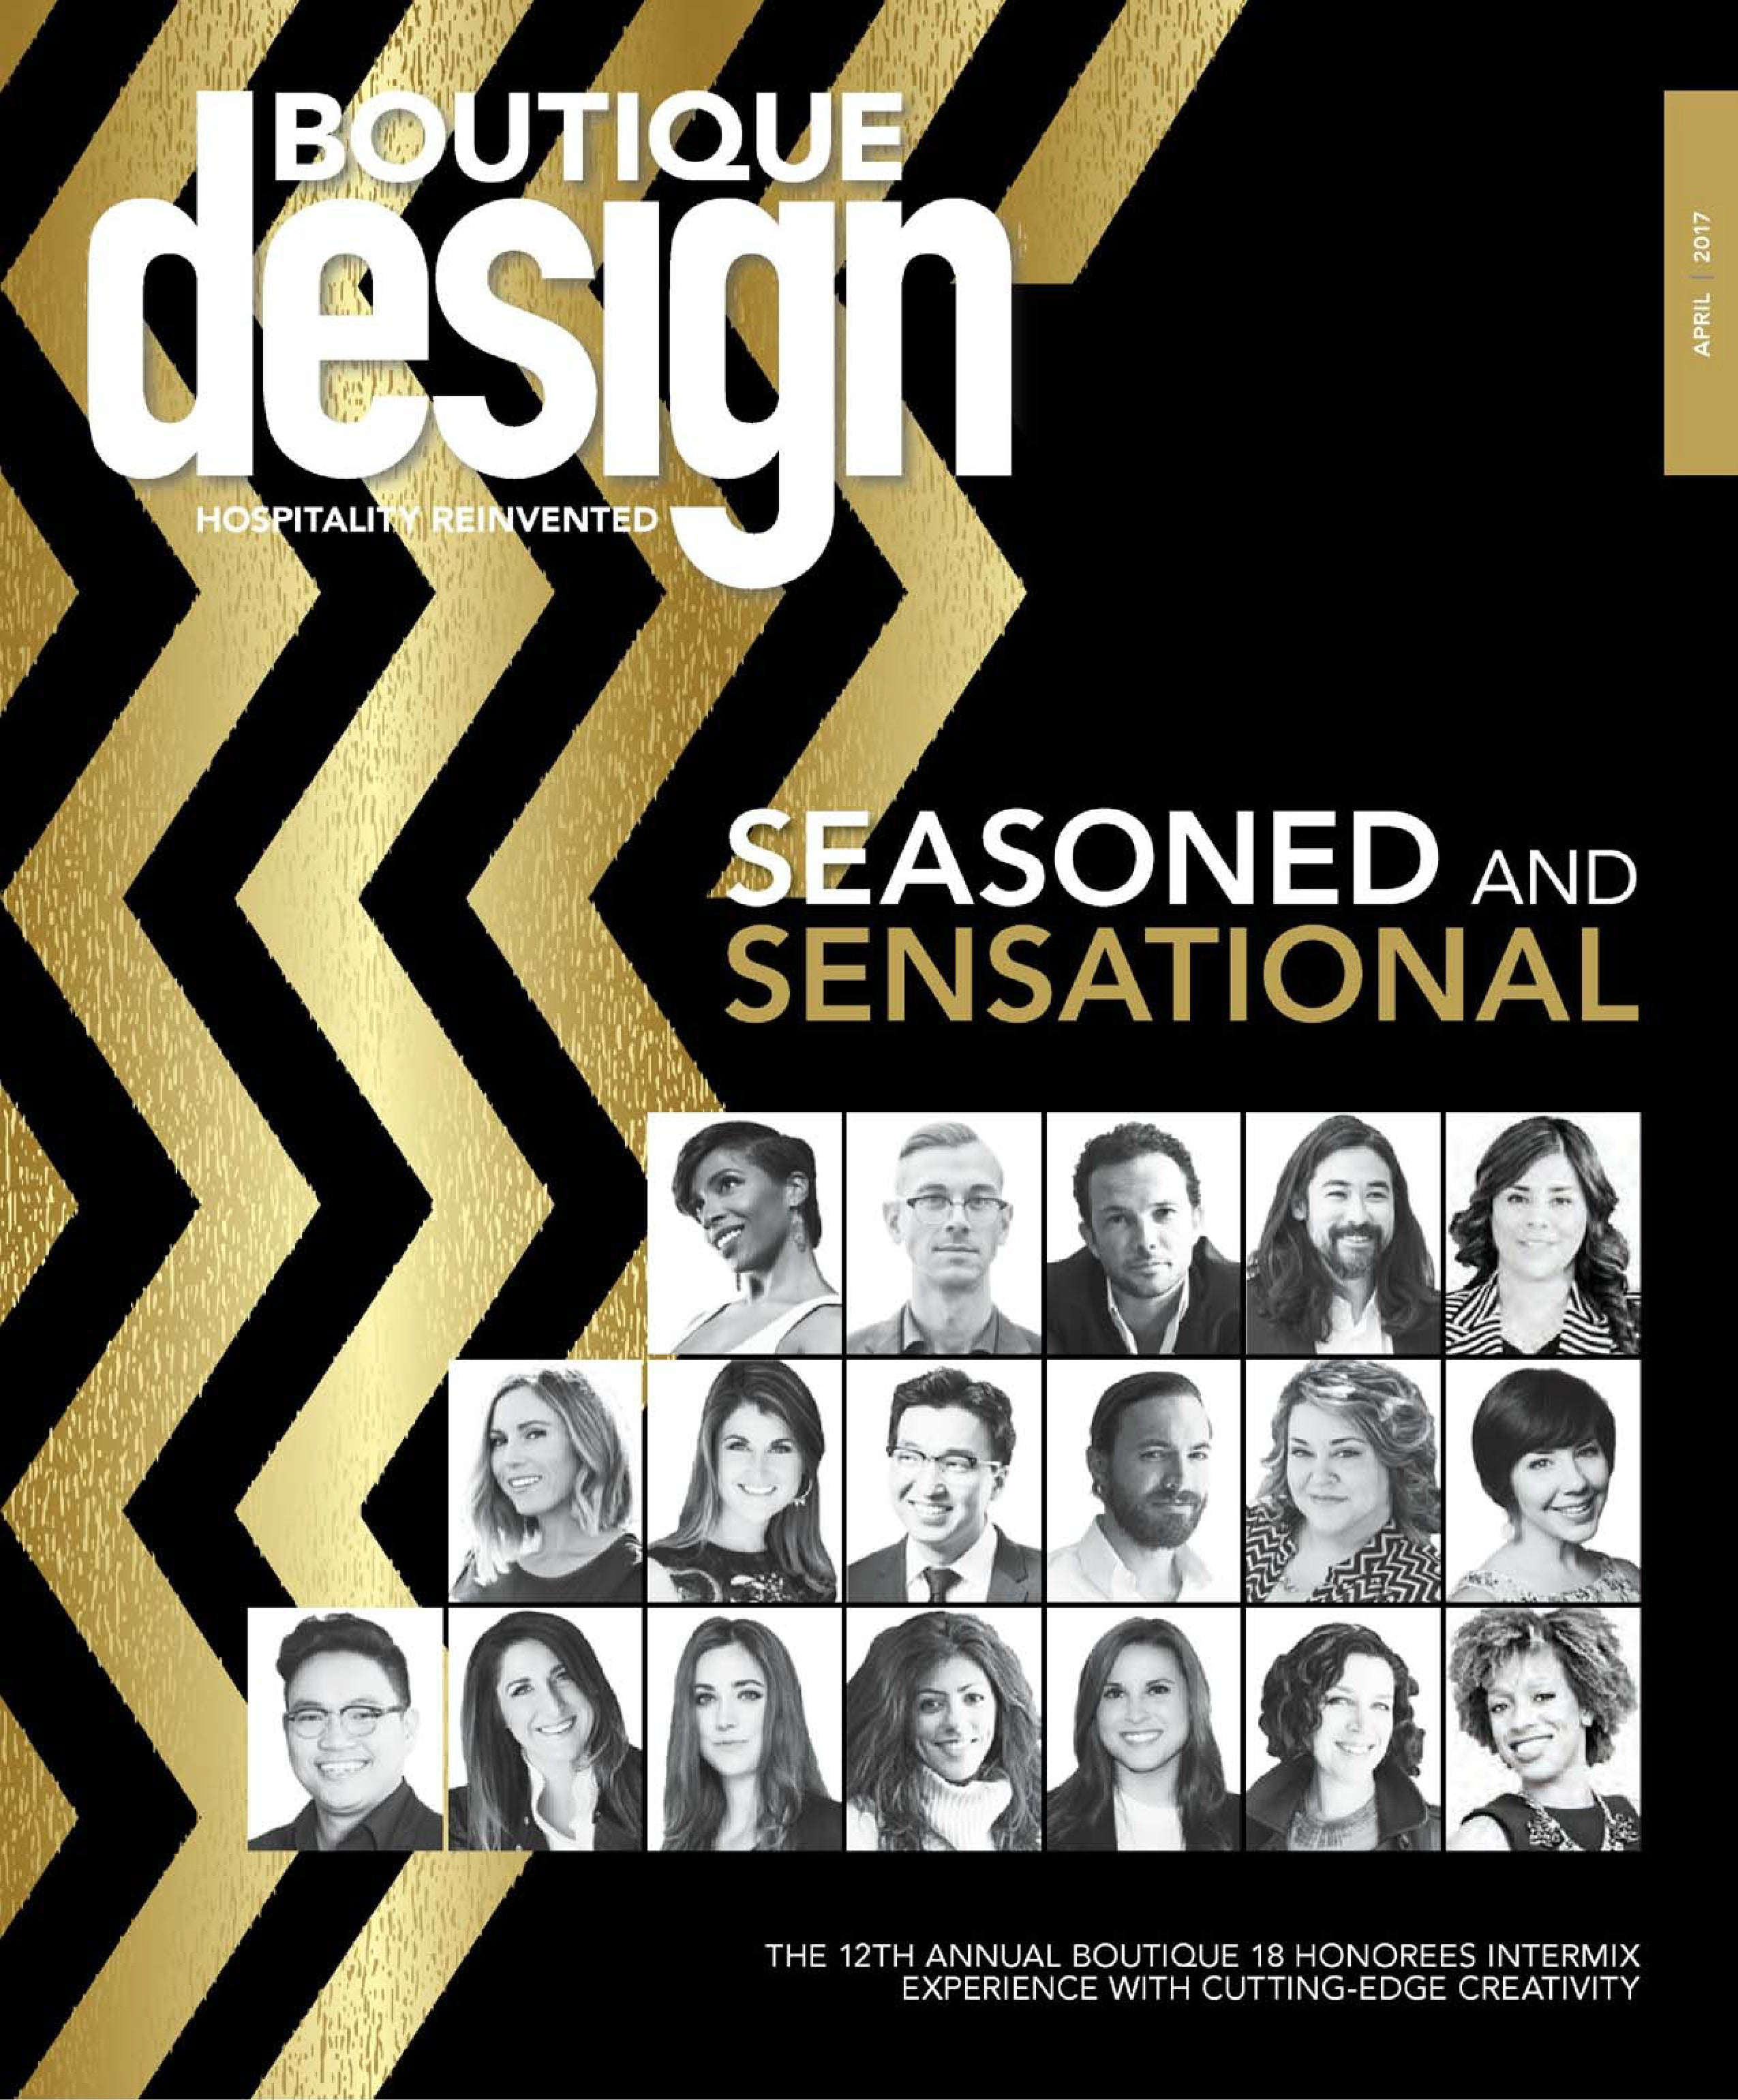 Jenna Rochon in Boutique Design Magazine